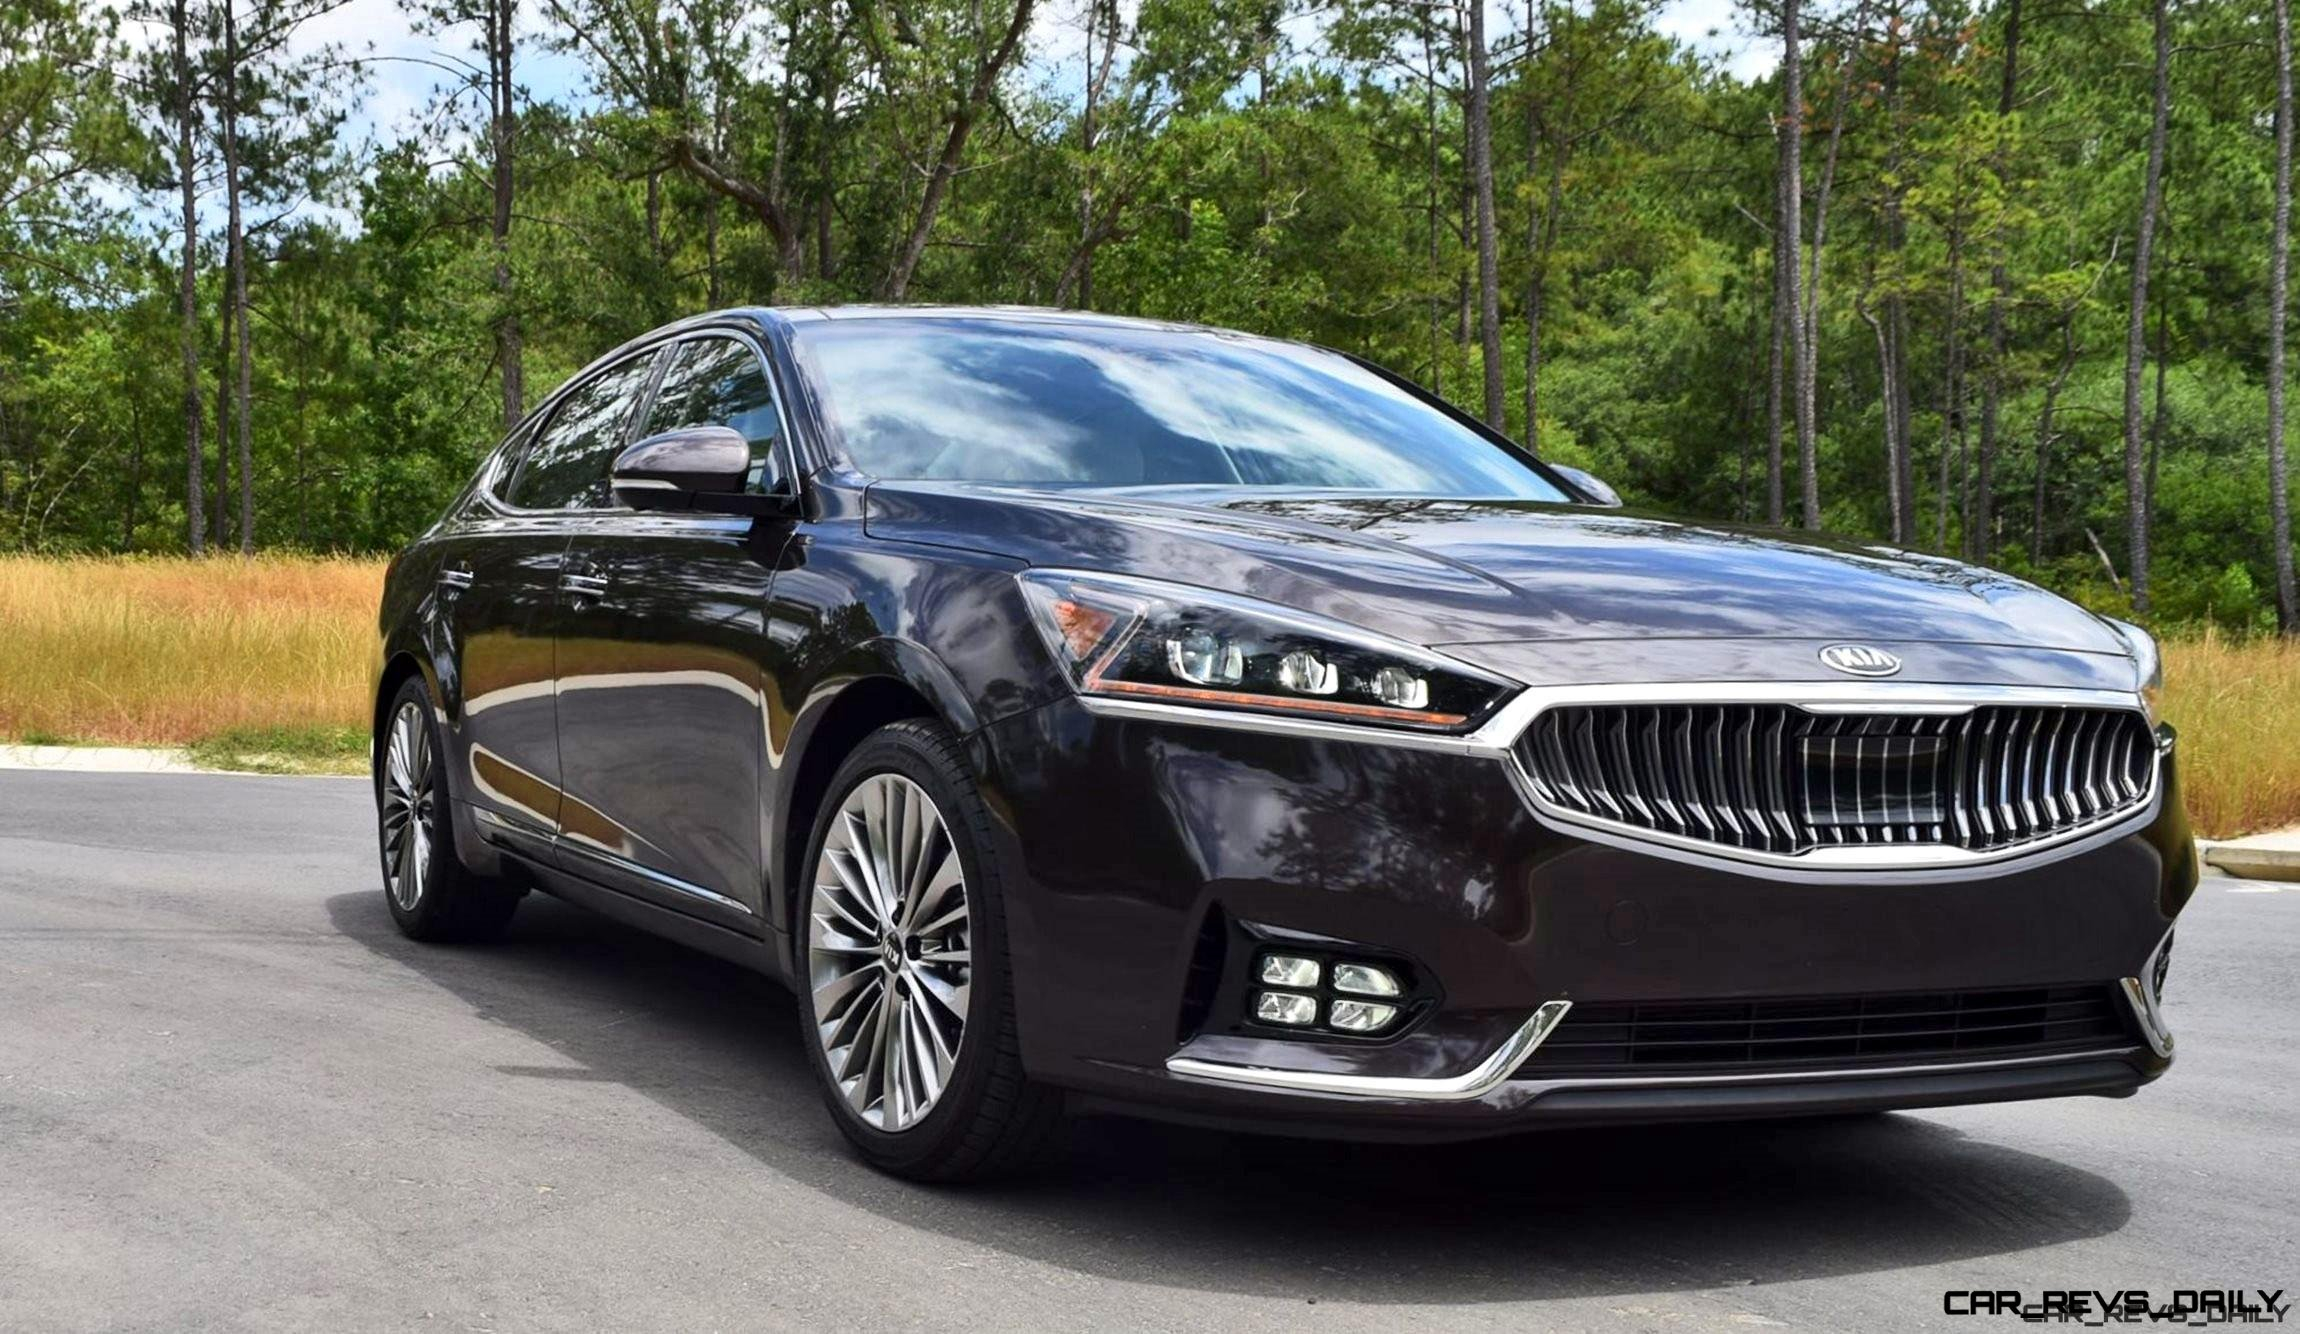 2017 Kia Cadenza Limited - Road Test Review + 2 Videos » Car - 2022 Kia Cadenza For Sale, Release Date, Performance Rumor